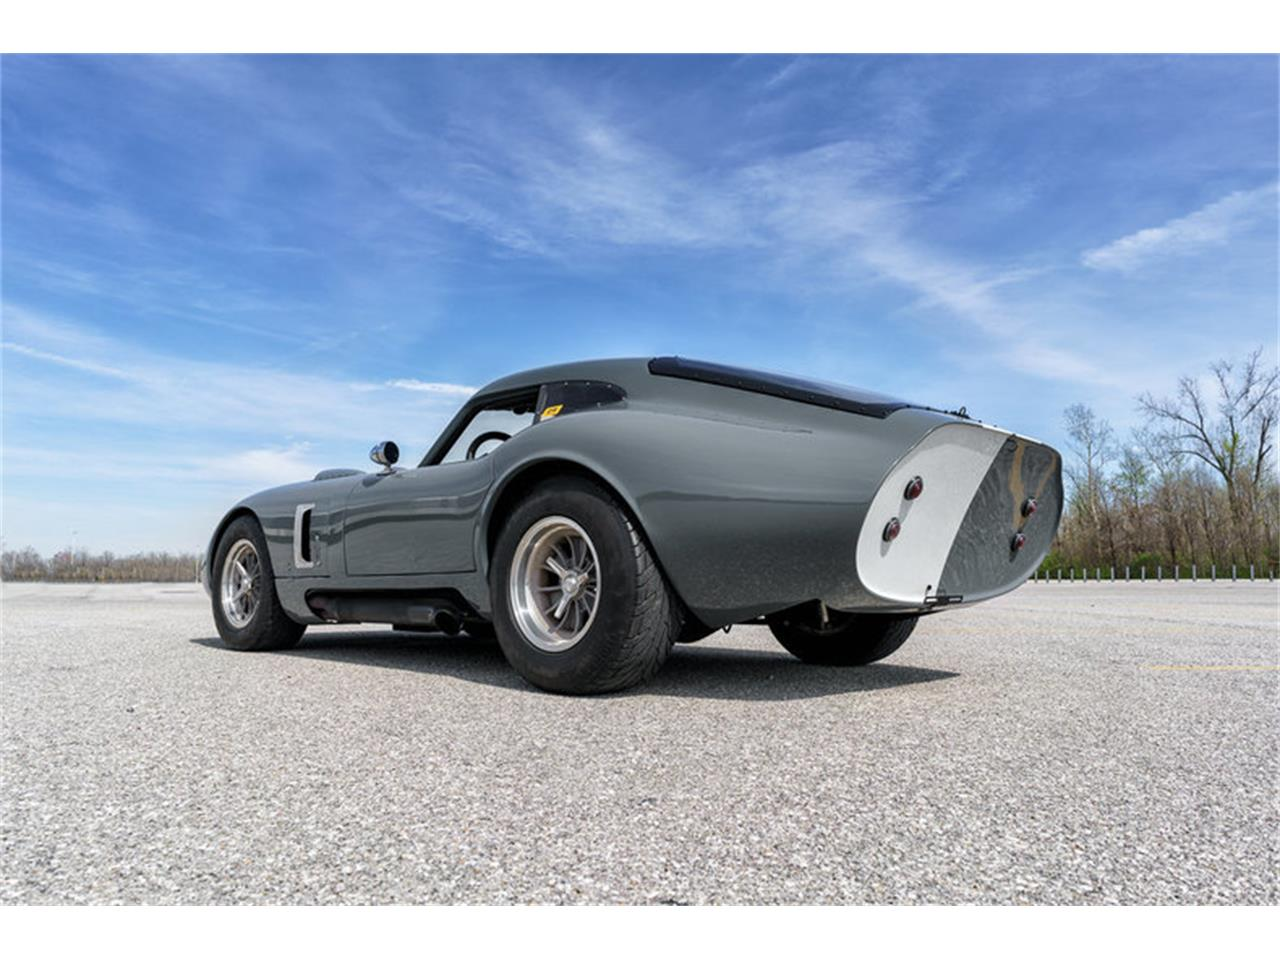 Large Picture of Classic 1964 Shelby Daytona located in Missouri - $79,995.00 - H75H